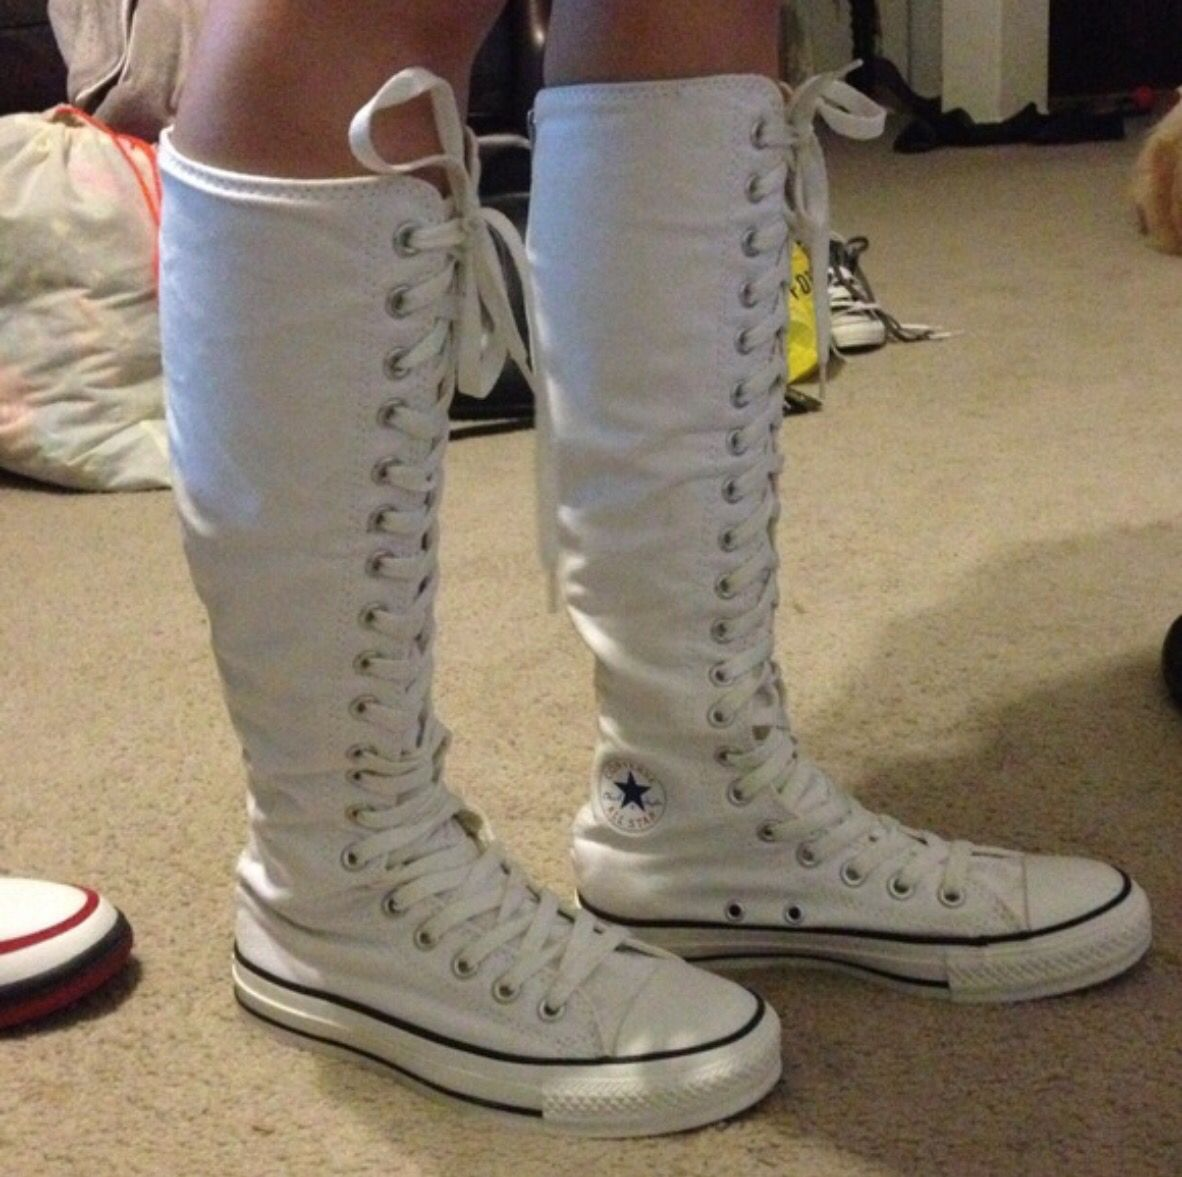 ed34b10f69601 One of my pair of white knee high converse | My collection of knee ...